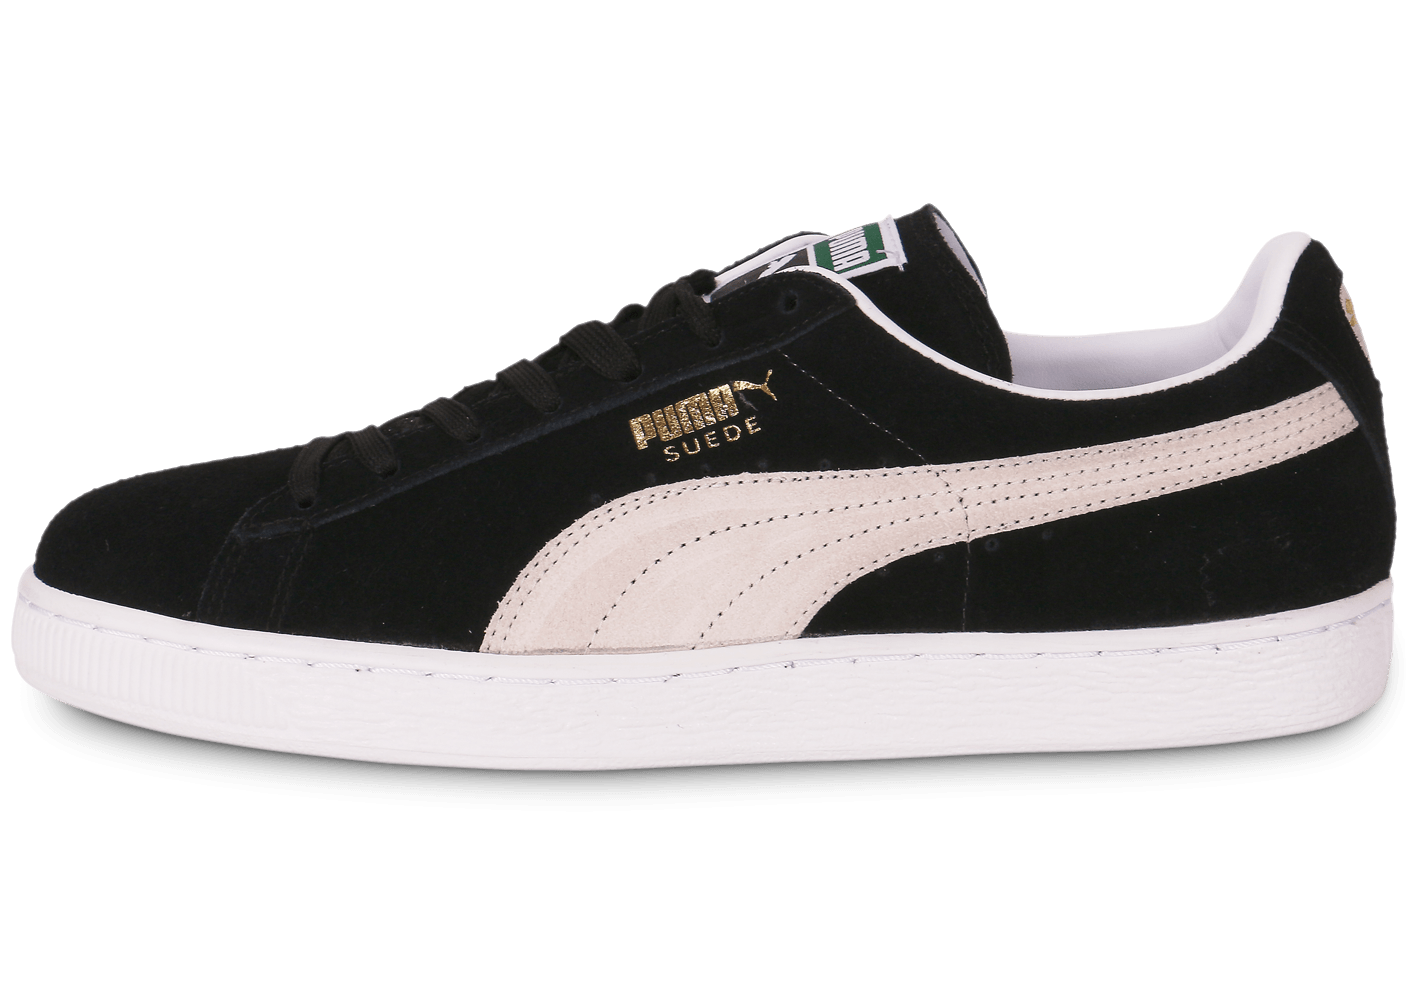 puma suede classic noire chaussures baskets homme. Black Bedroom Furniture Sets. Home Design Ideas